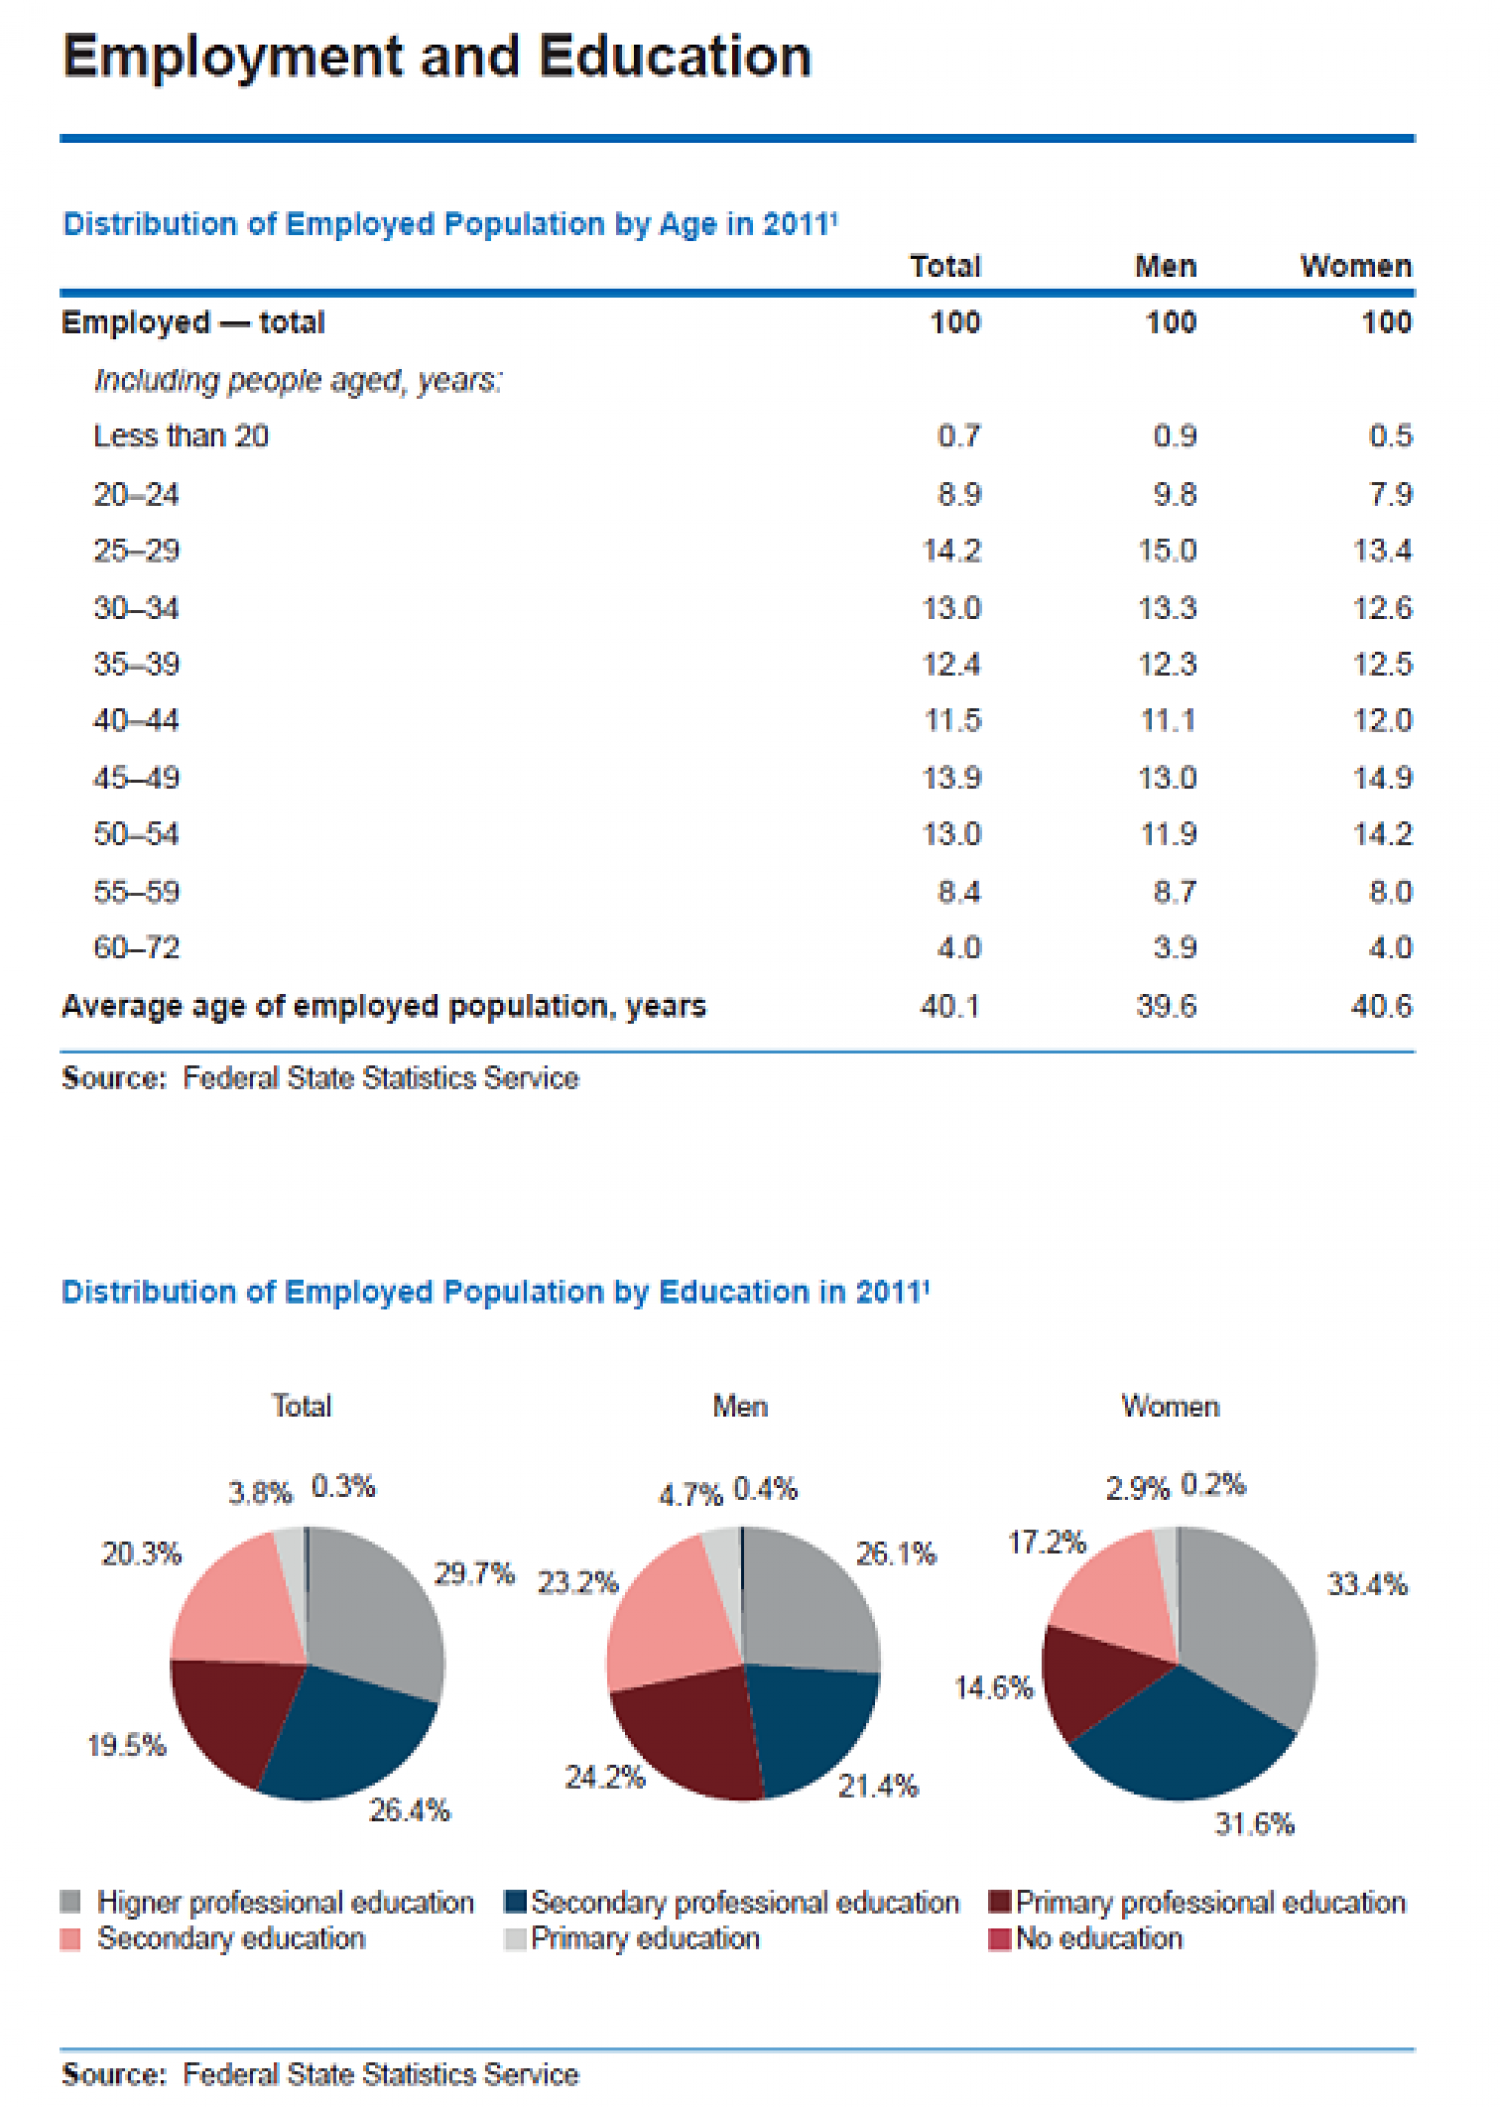 Russian Federation : Employment and Education Infographic